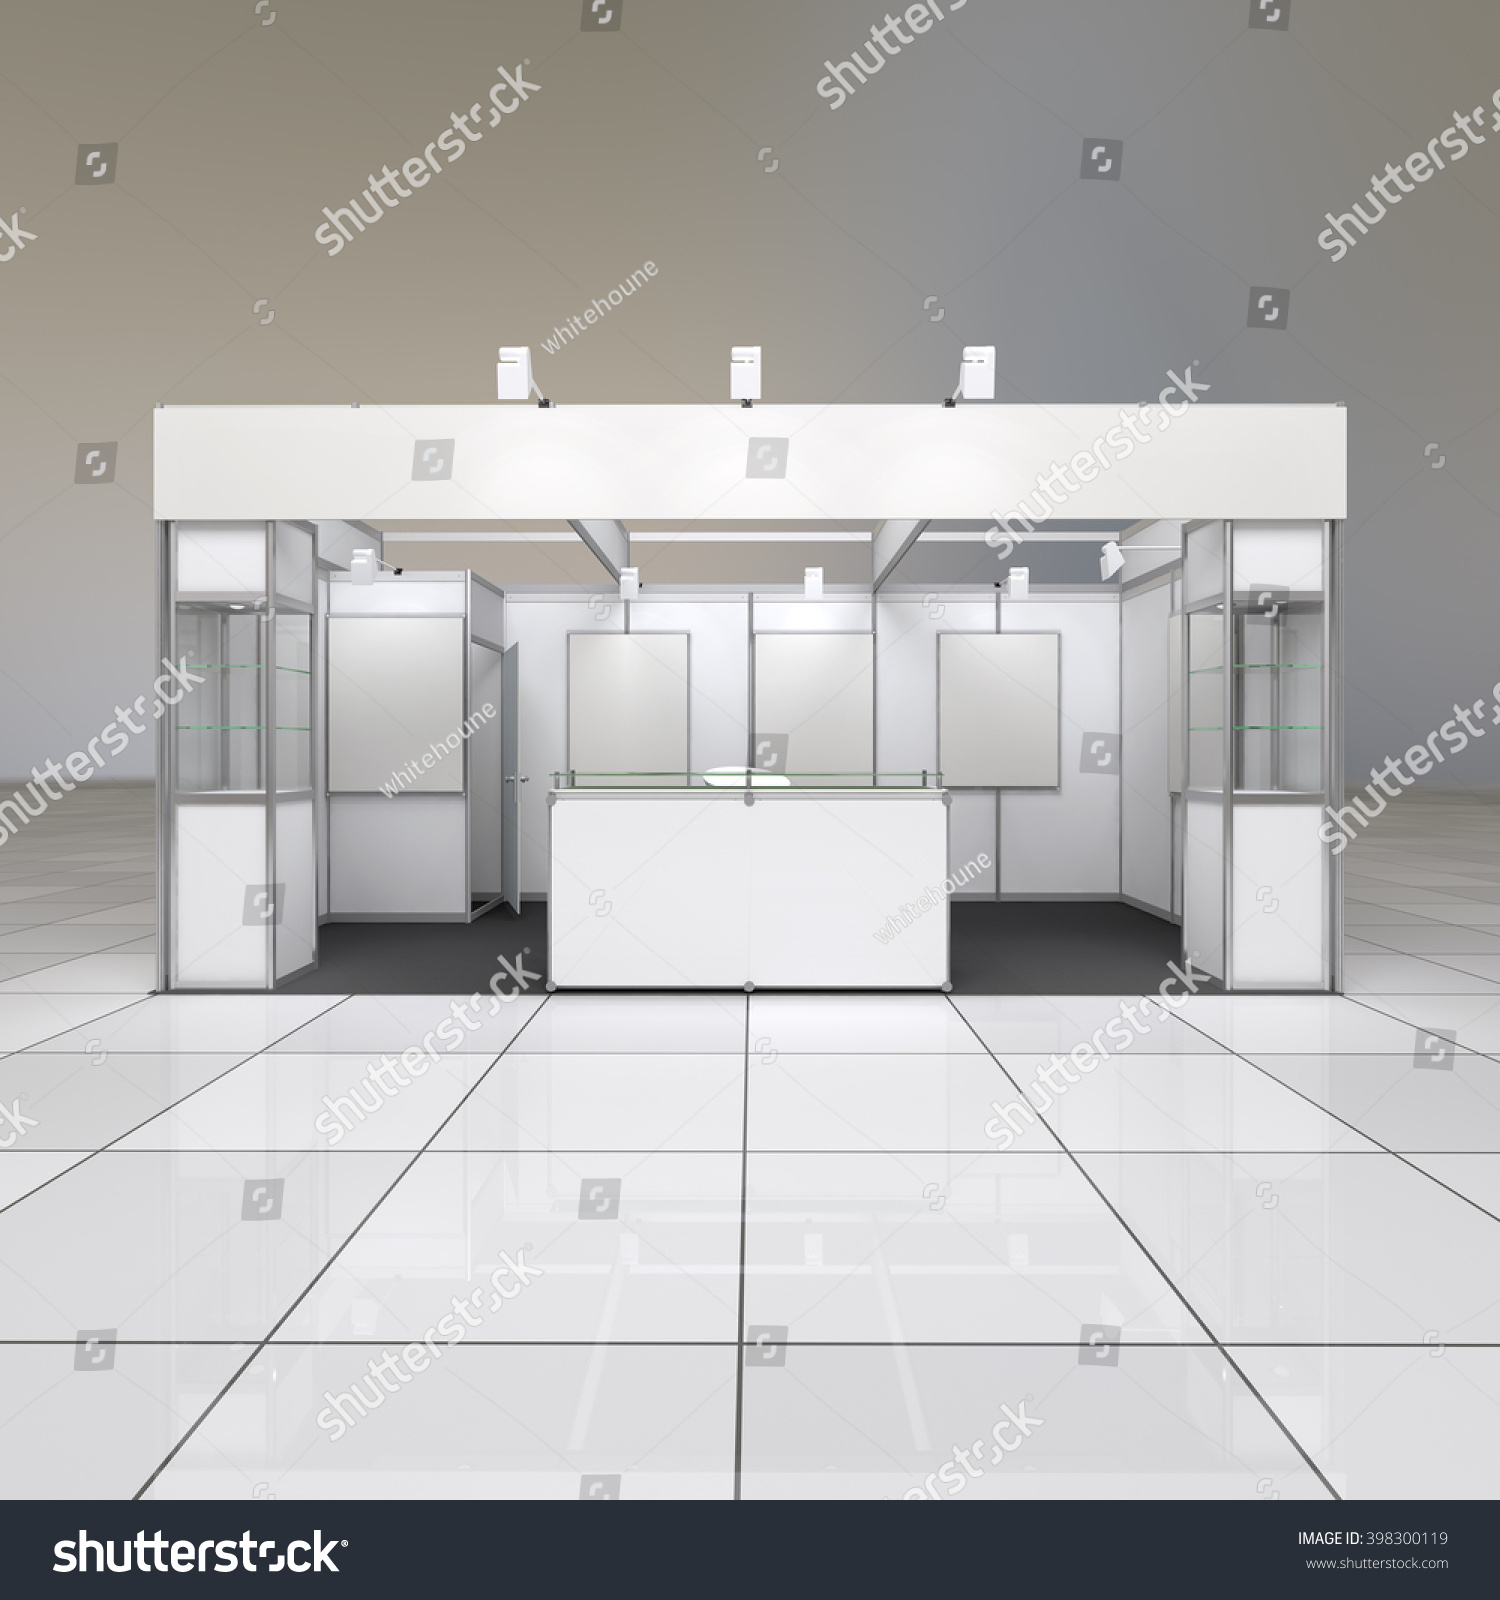 Exhibition Stand Design Drawings : Modern simple design exhibition stand blank stock illustration